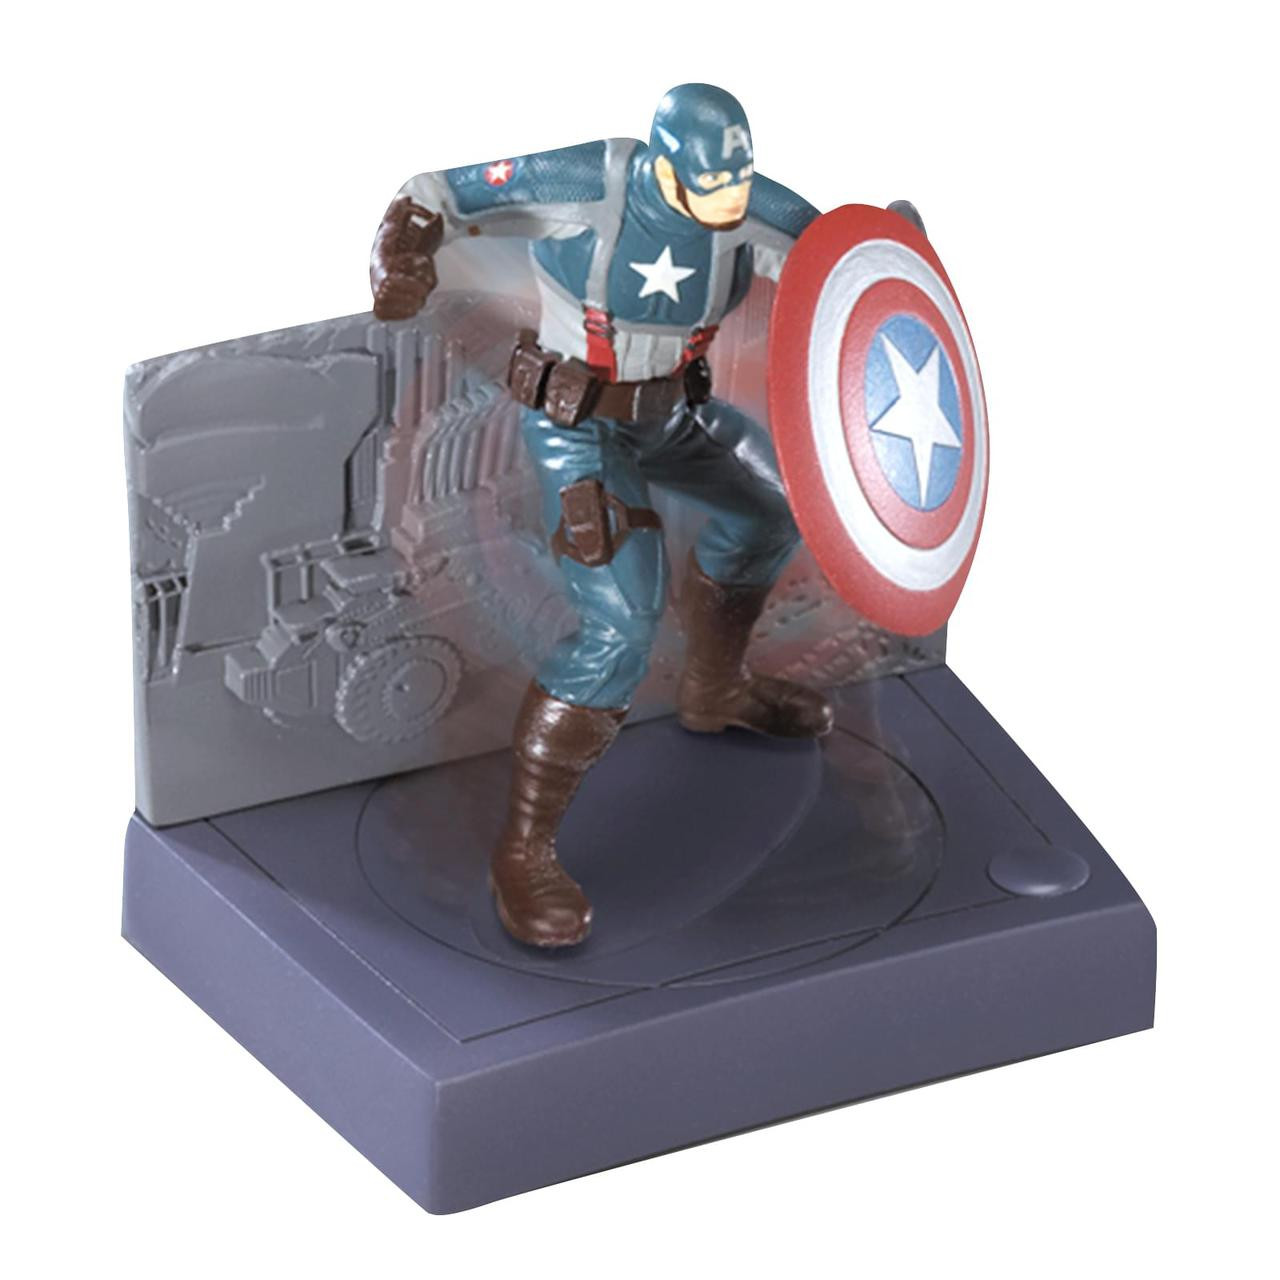 Captain America Spin and Fight Cake Topper